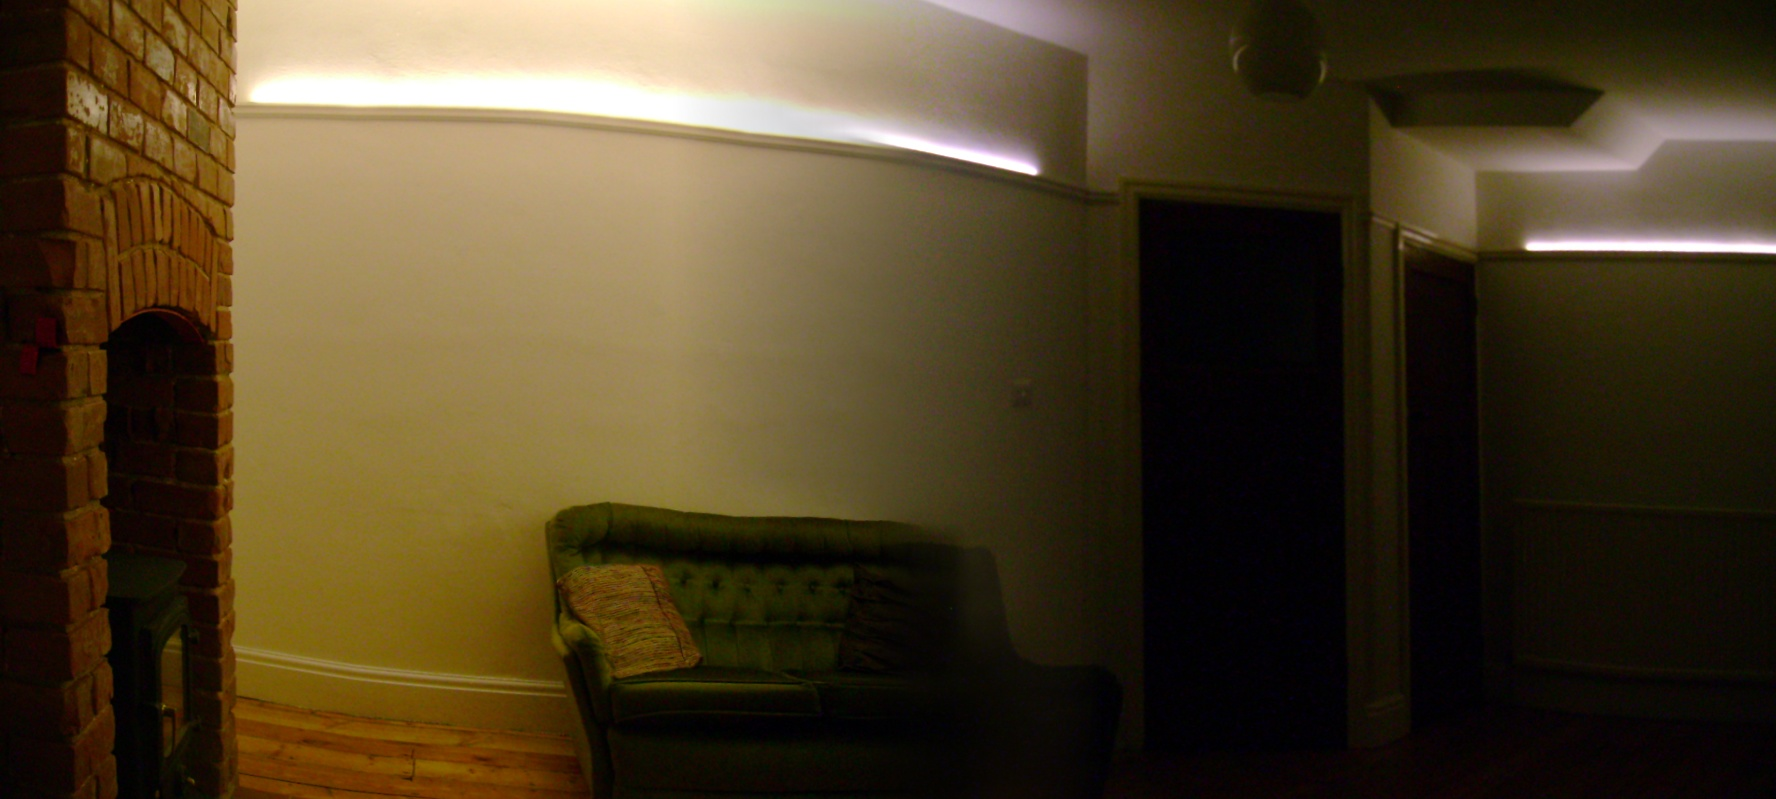 Led Lights Room : ... room has no direct window, so the lights provide bright diffuse light